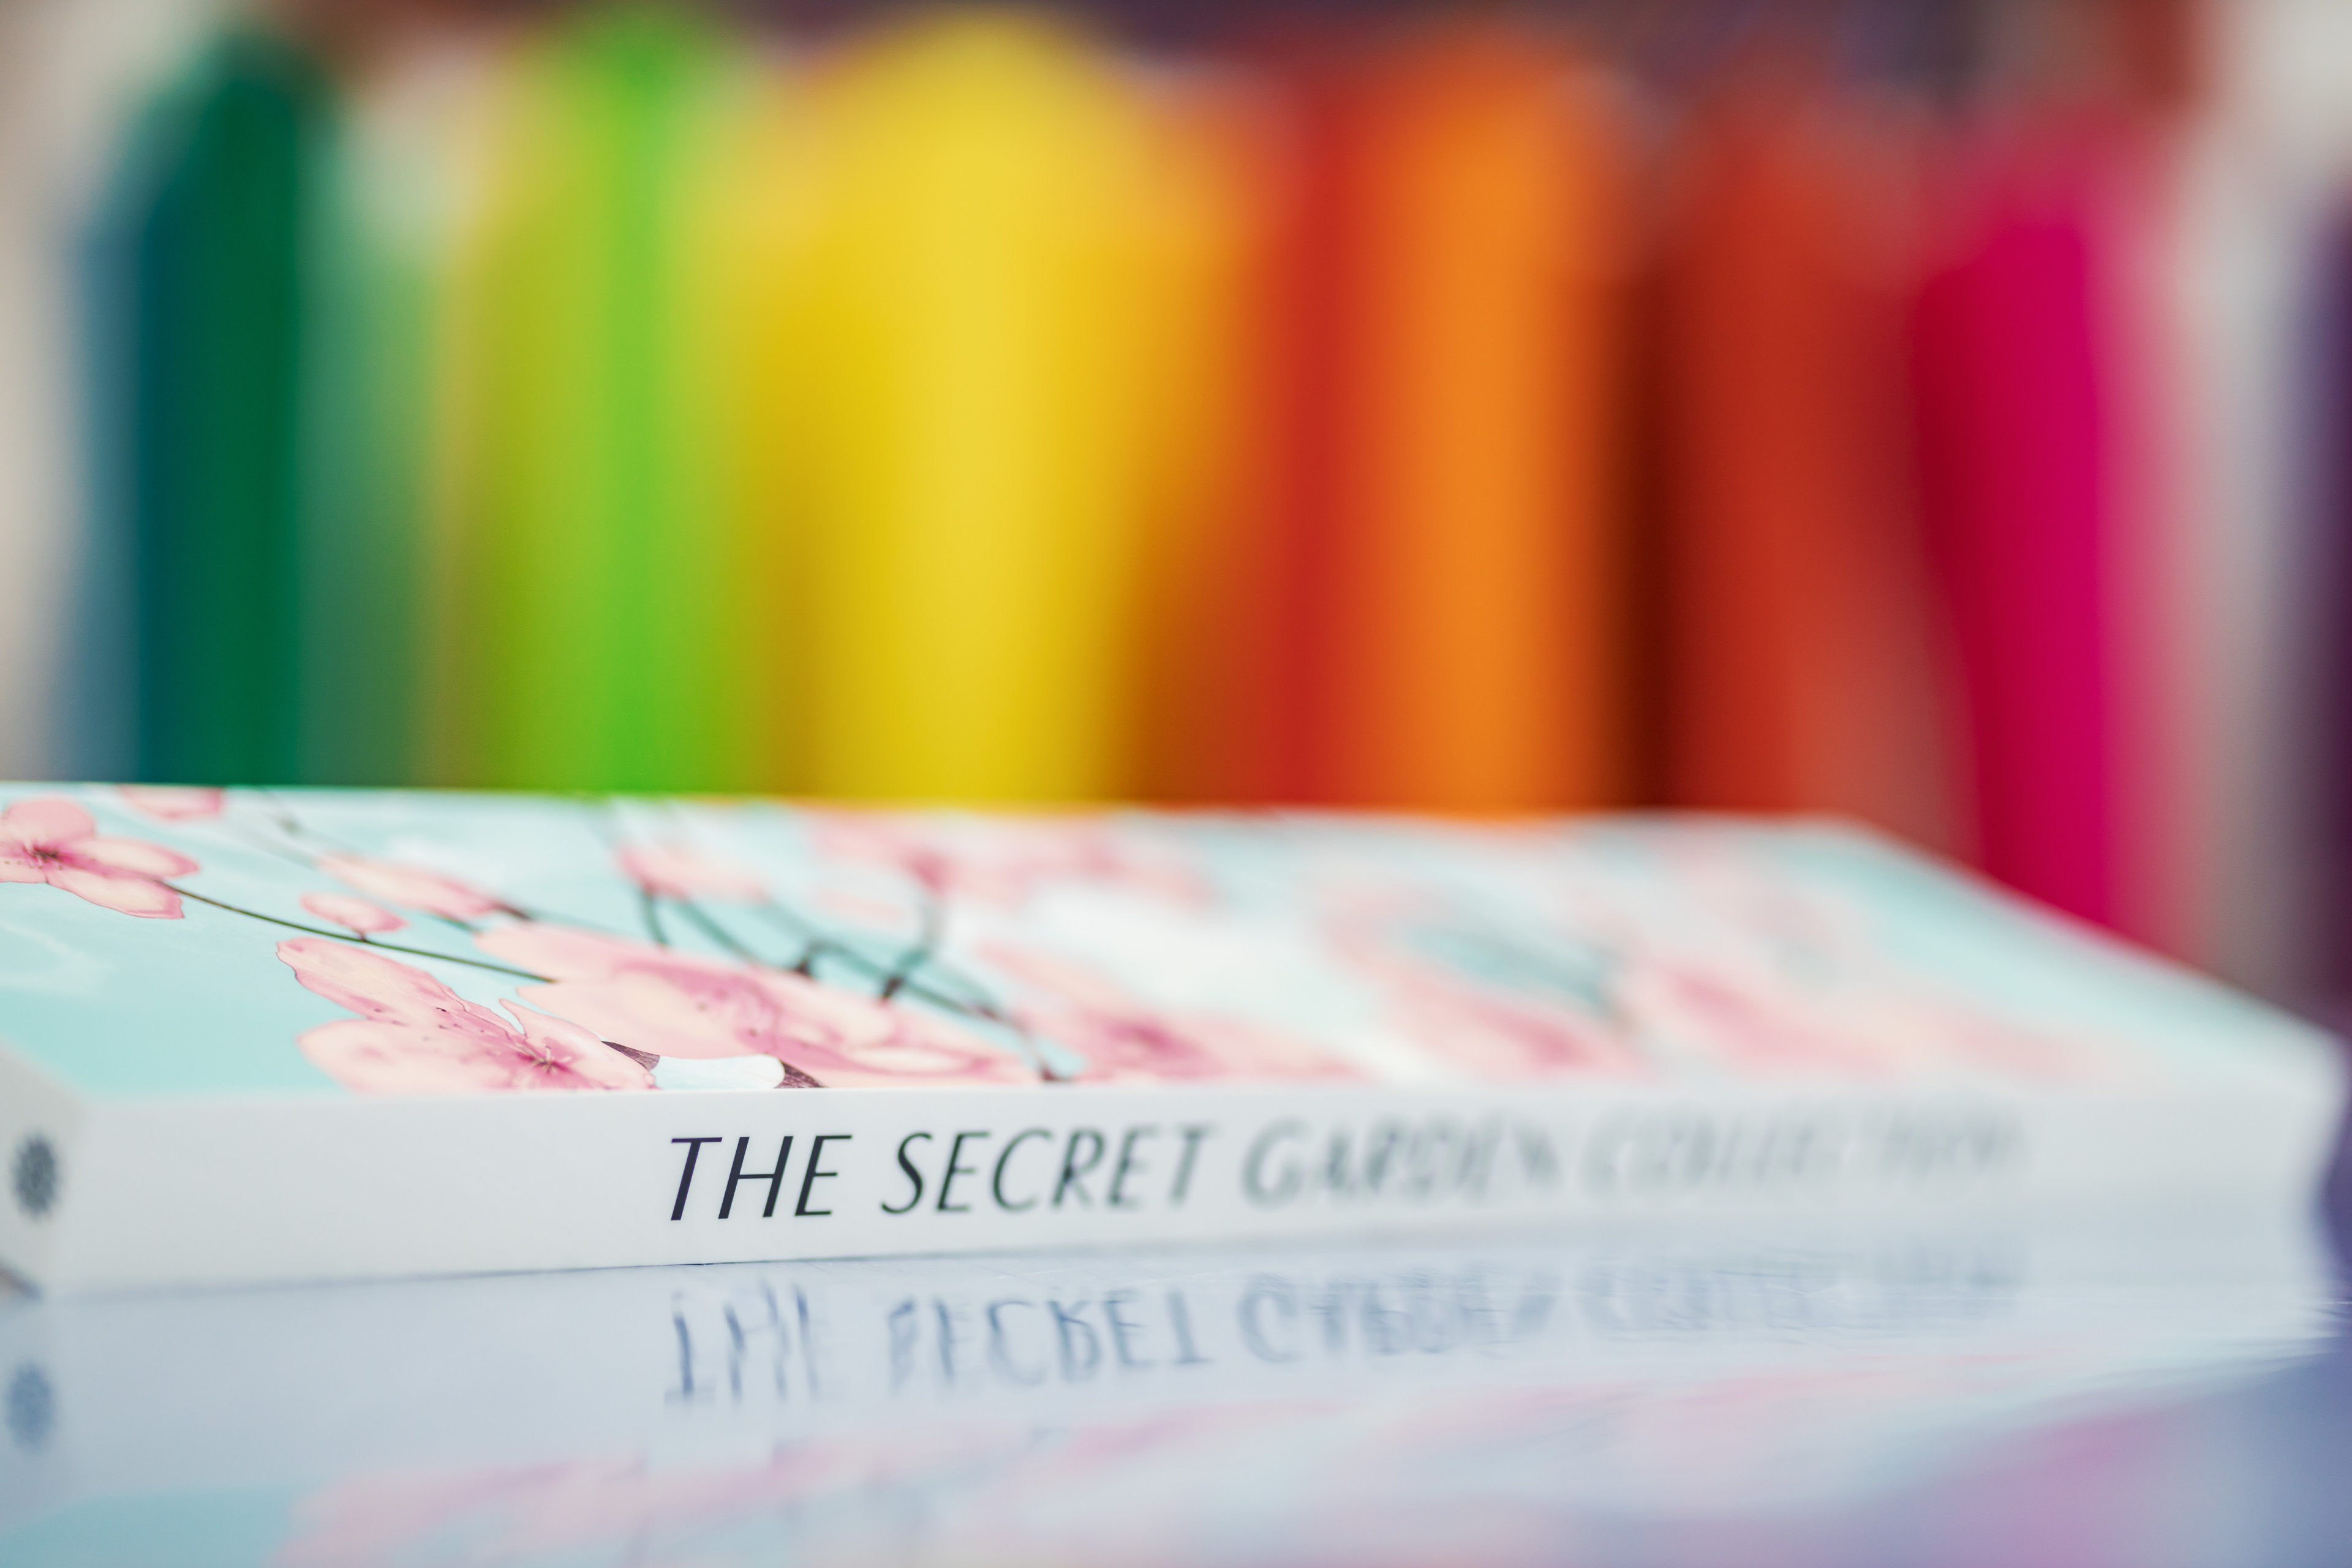 The secret garden book and colours in background